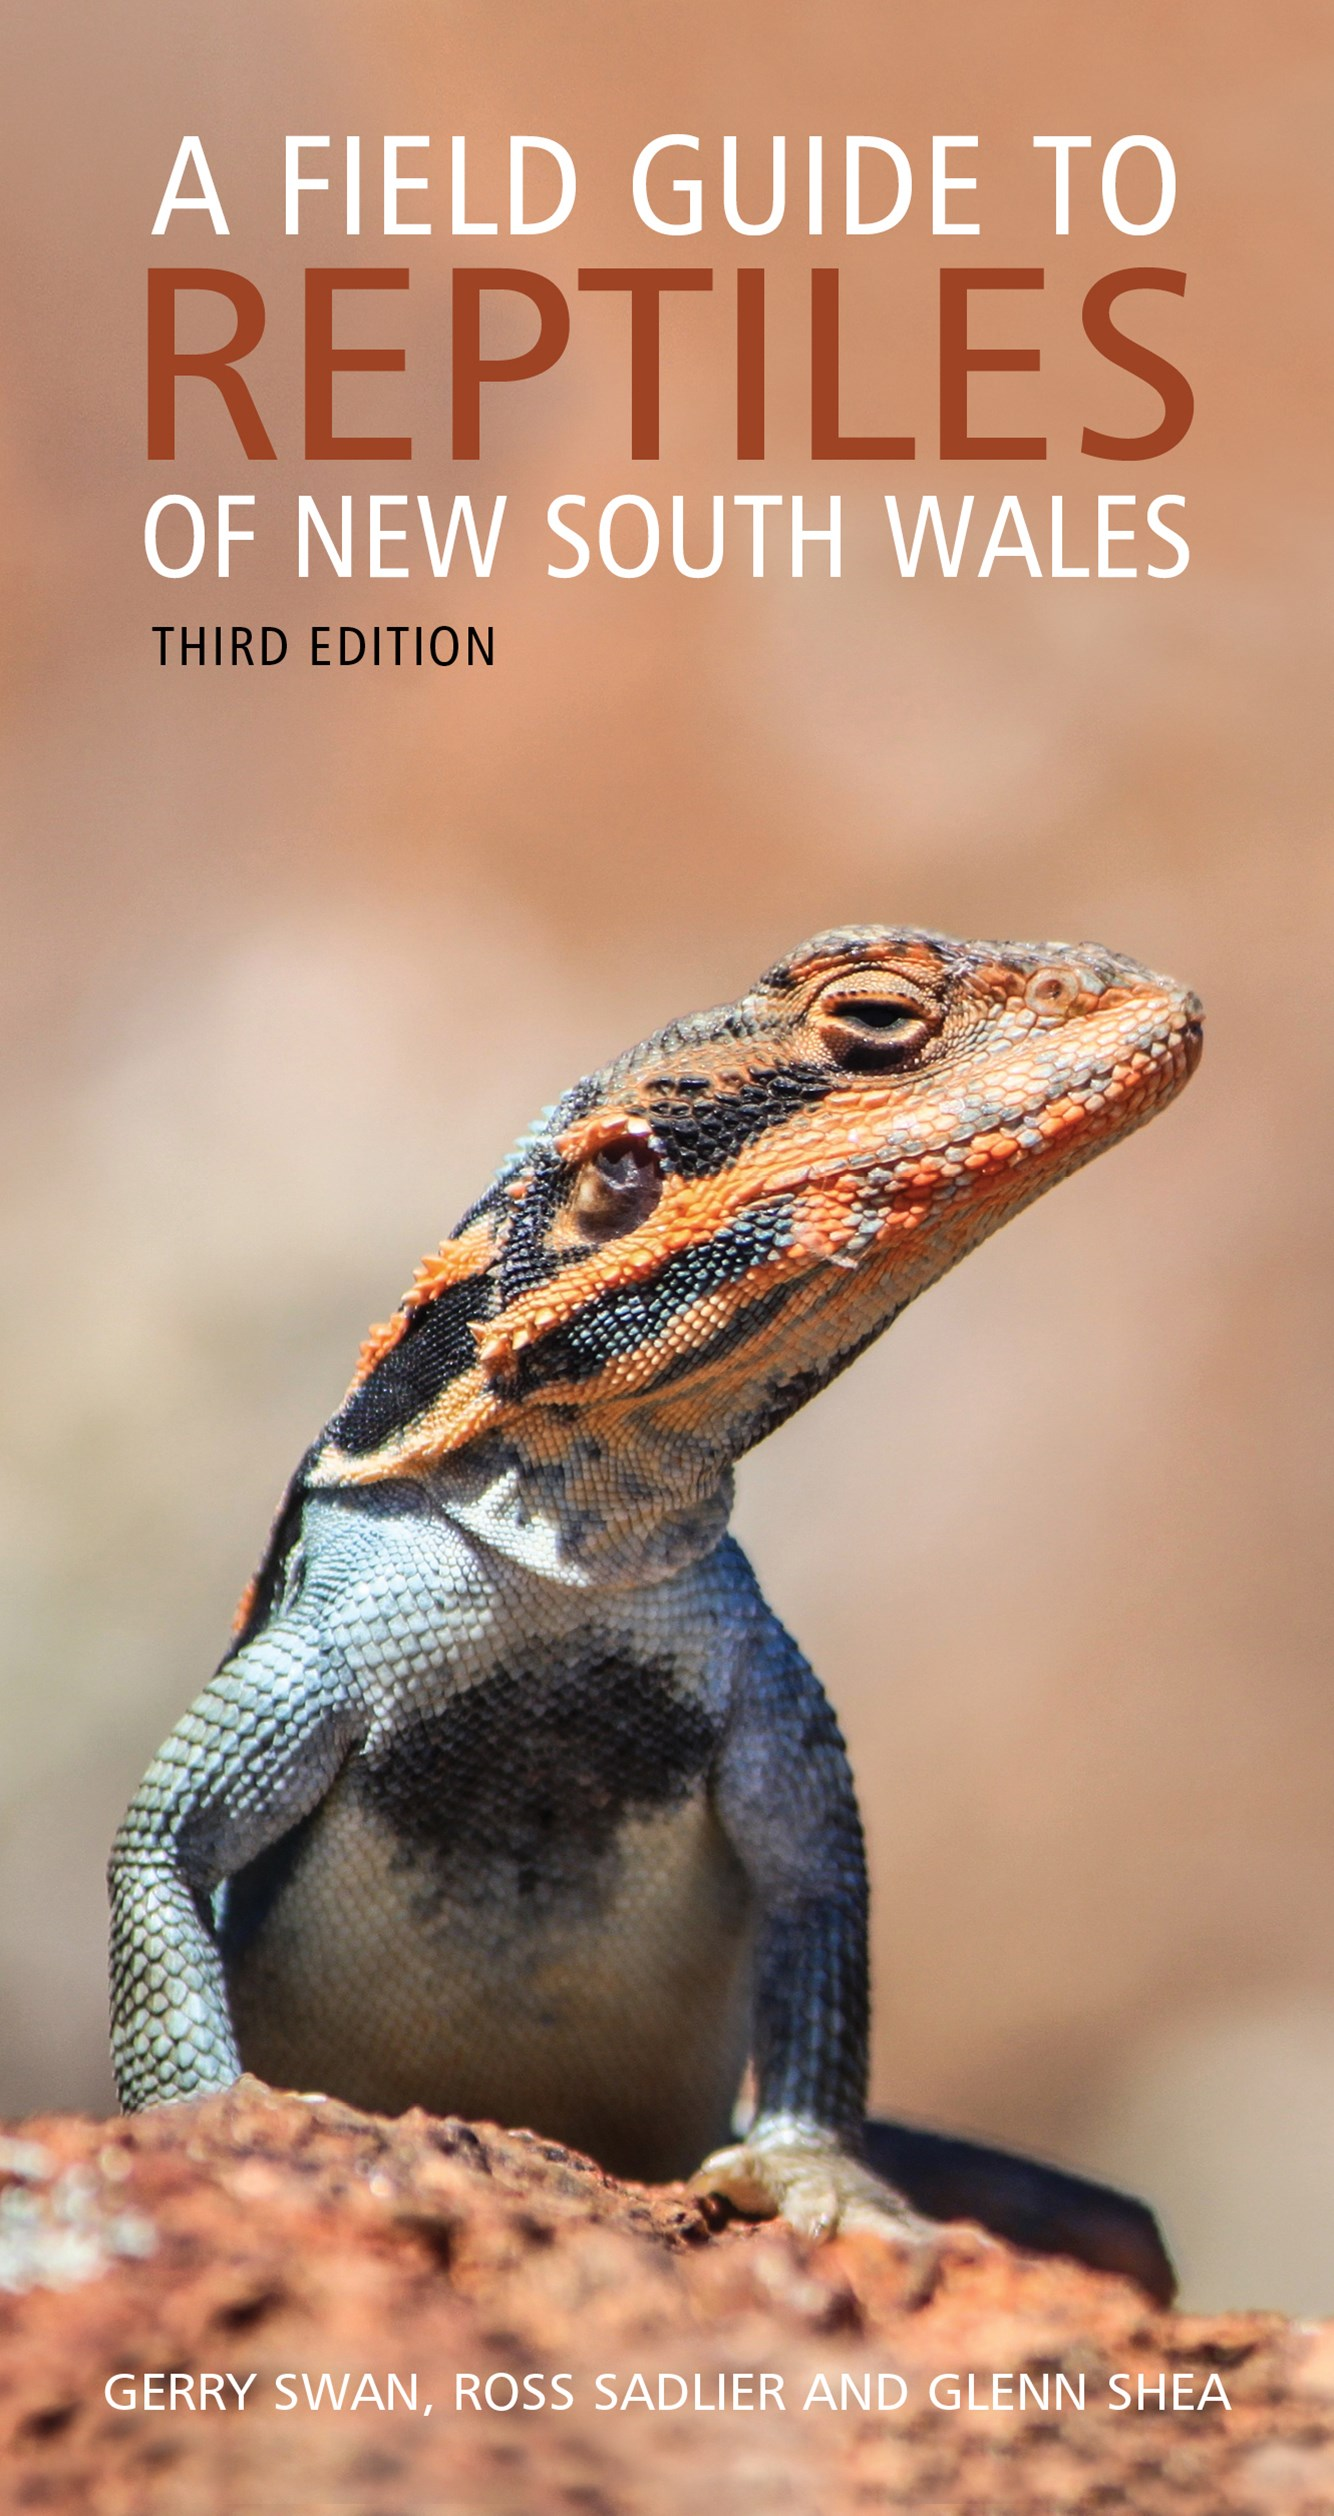 A Field Guide to Reptiles of NSW